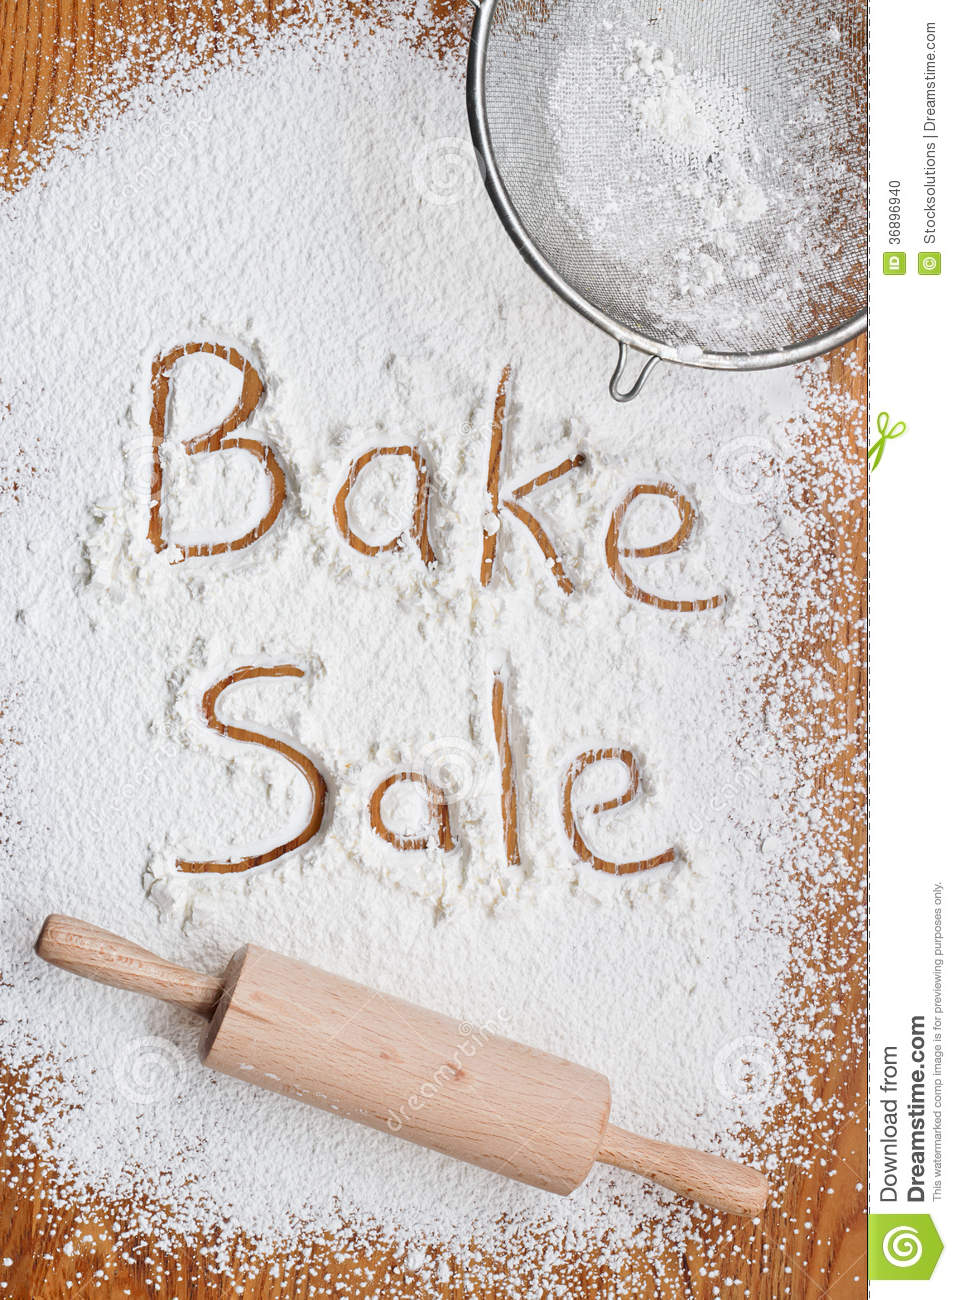 bake poster stock photo image  bake poster